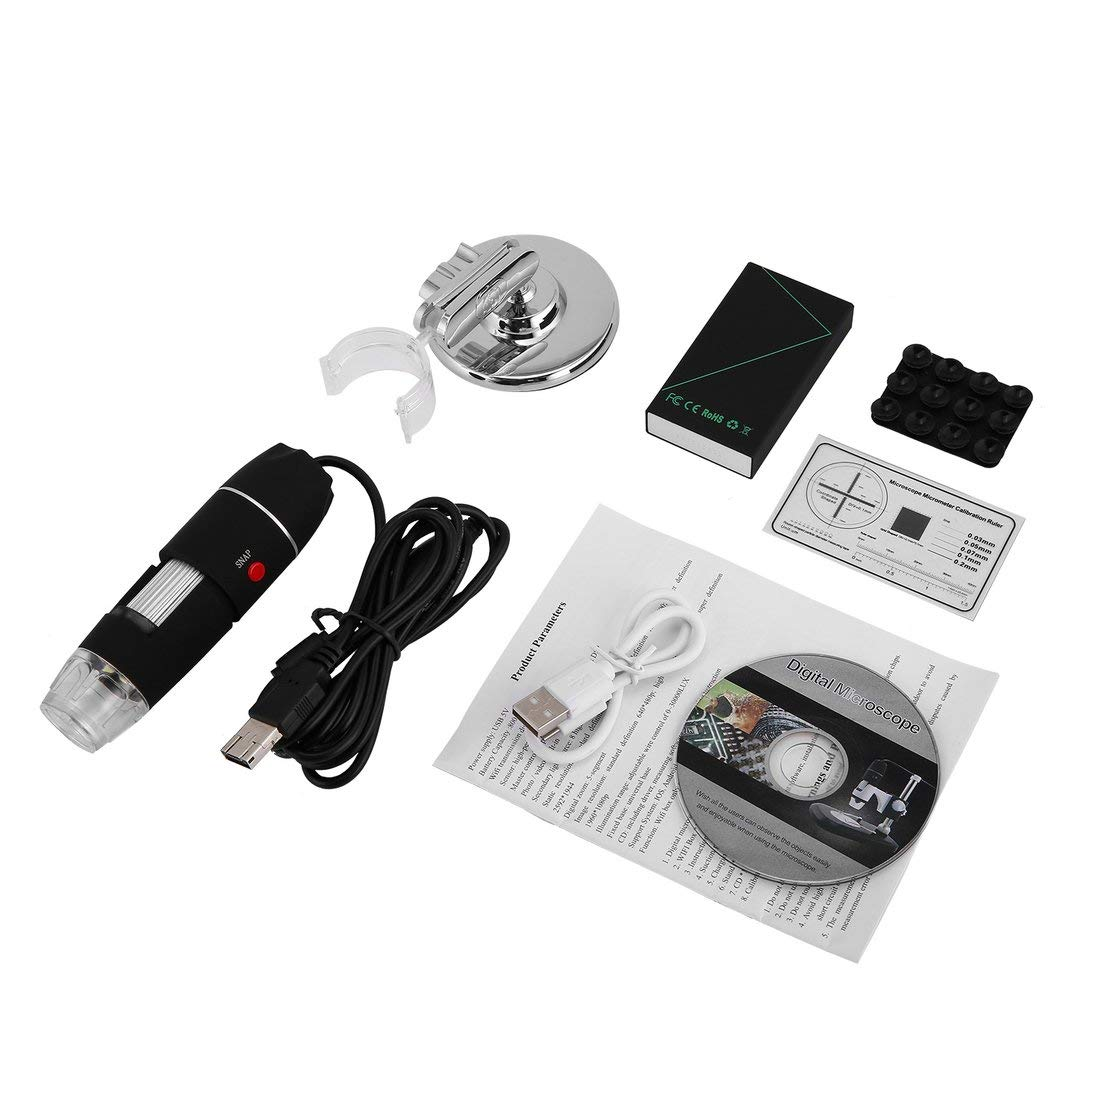 WiFi Digital Microscope 8 LED Due in uno USB Endoscopio Microscopio 1600X Stereo Magnifier elettronico Plug and Play BlackPJenny